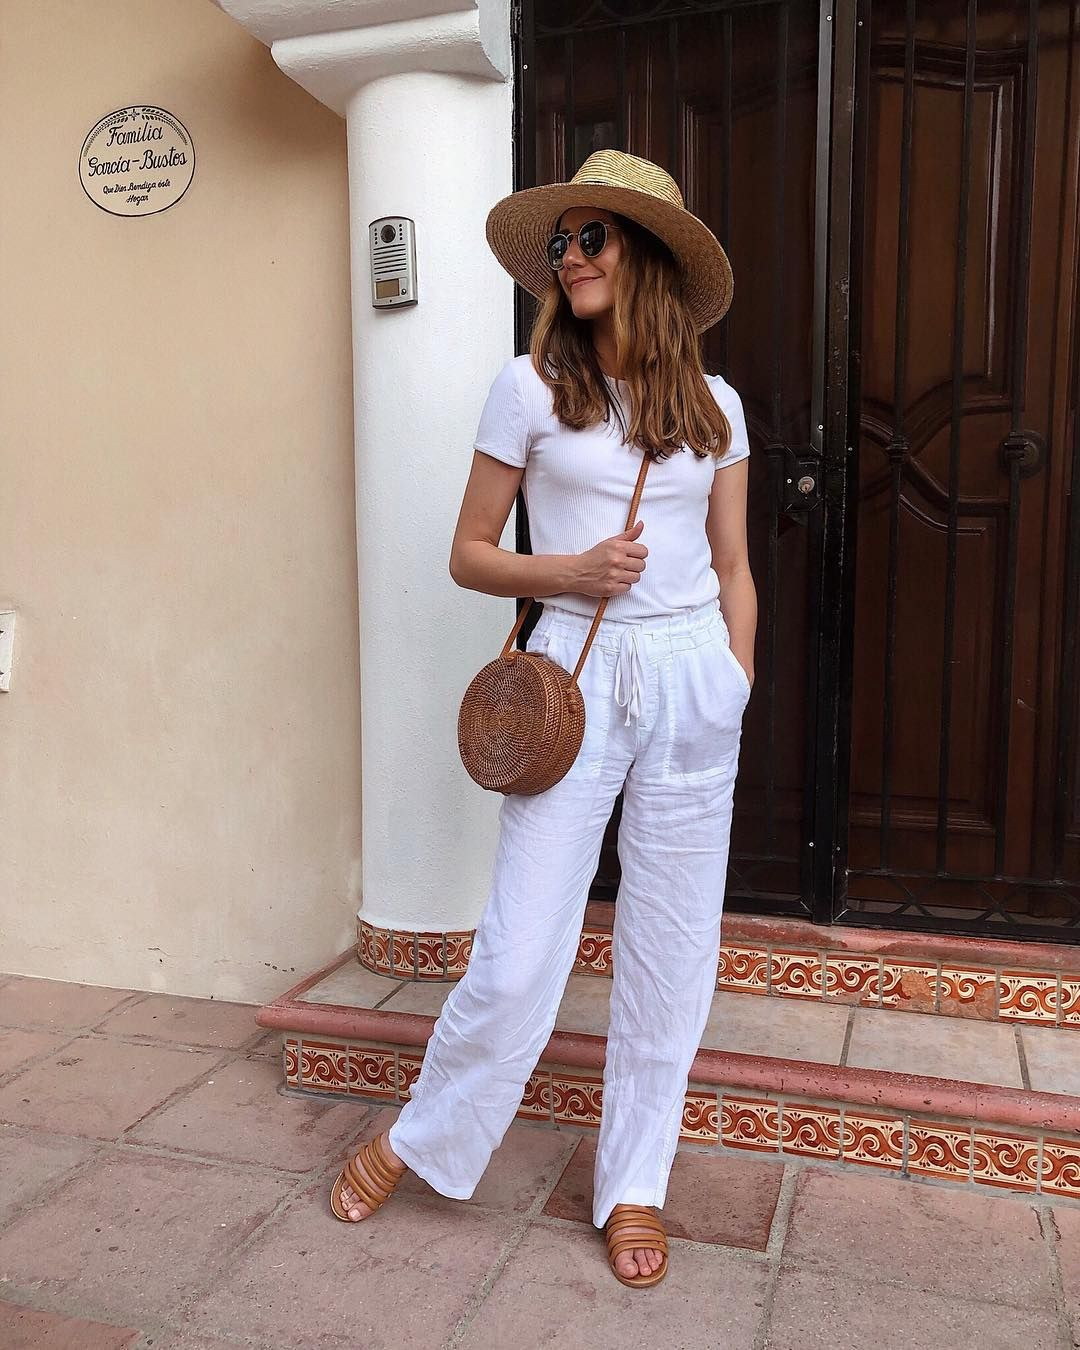 How to Wear a Straw Hat 14 Ways + Finding the Right Fit and Style for You > The Effortless Chic